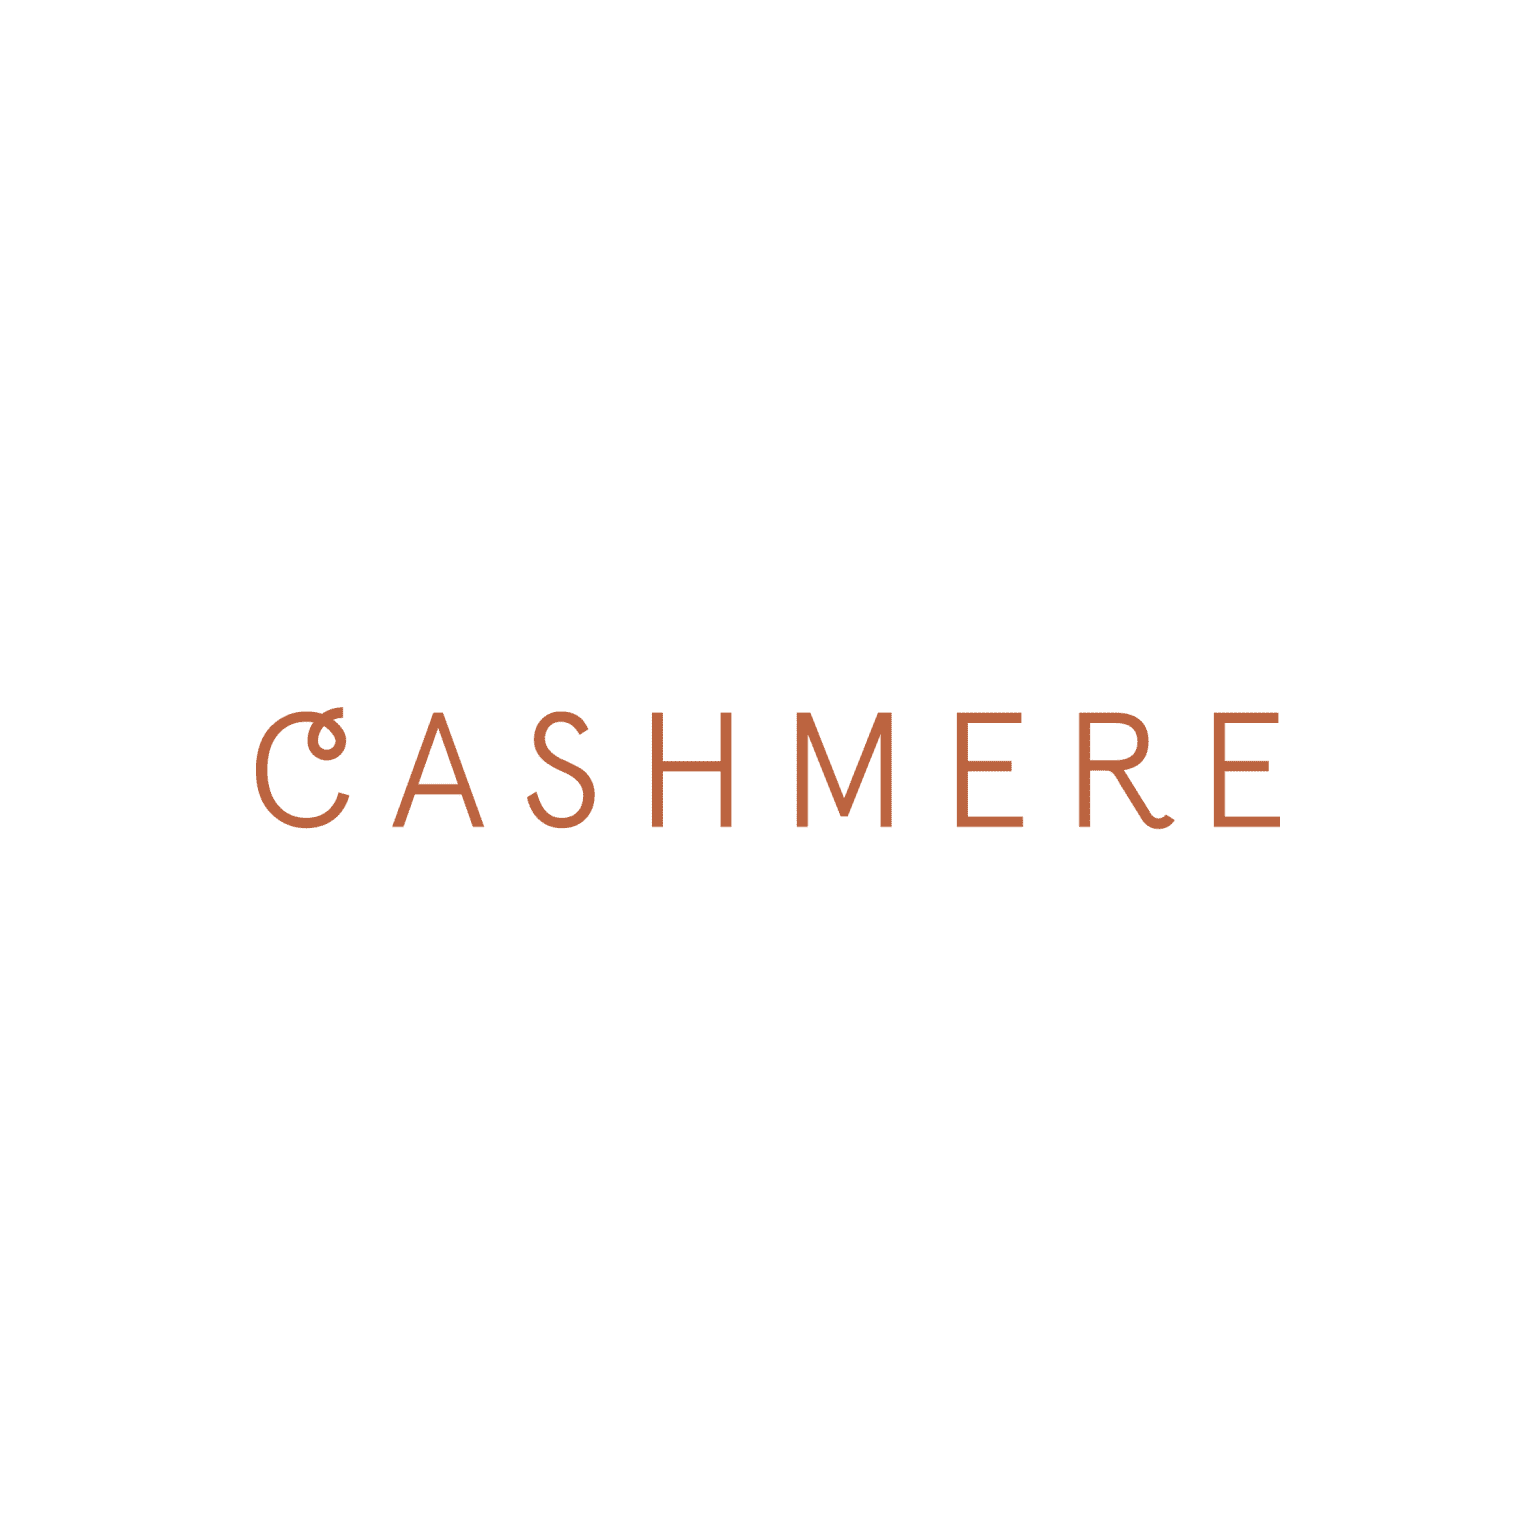 Cashmere by Store of Hope